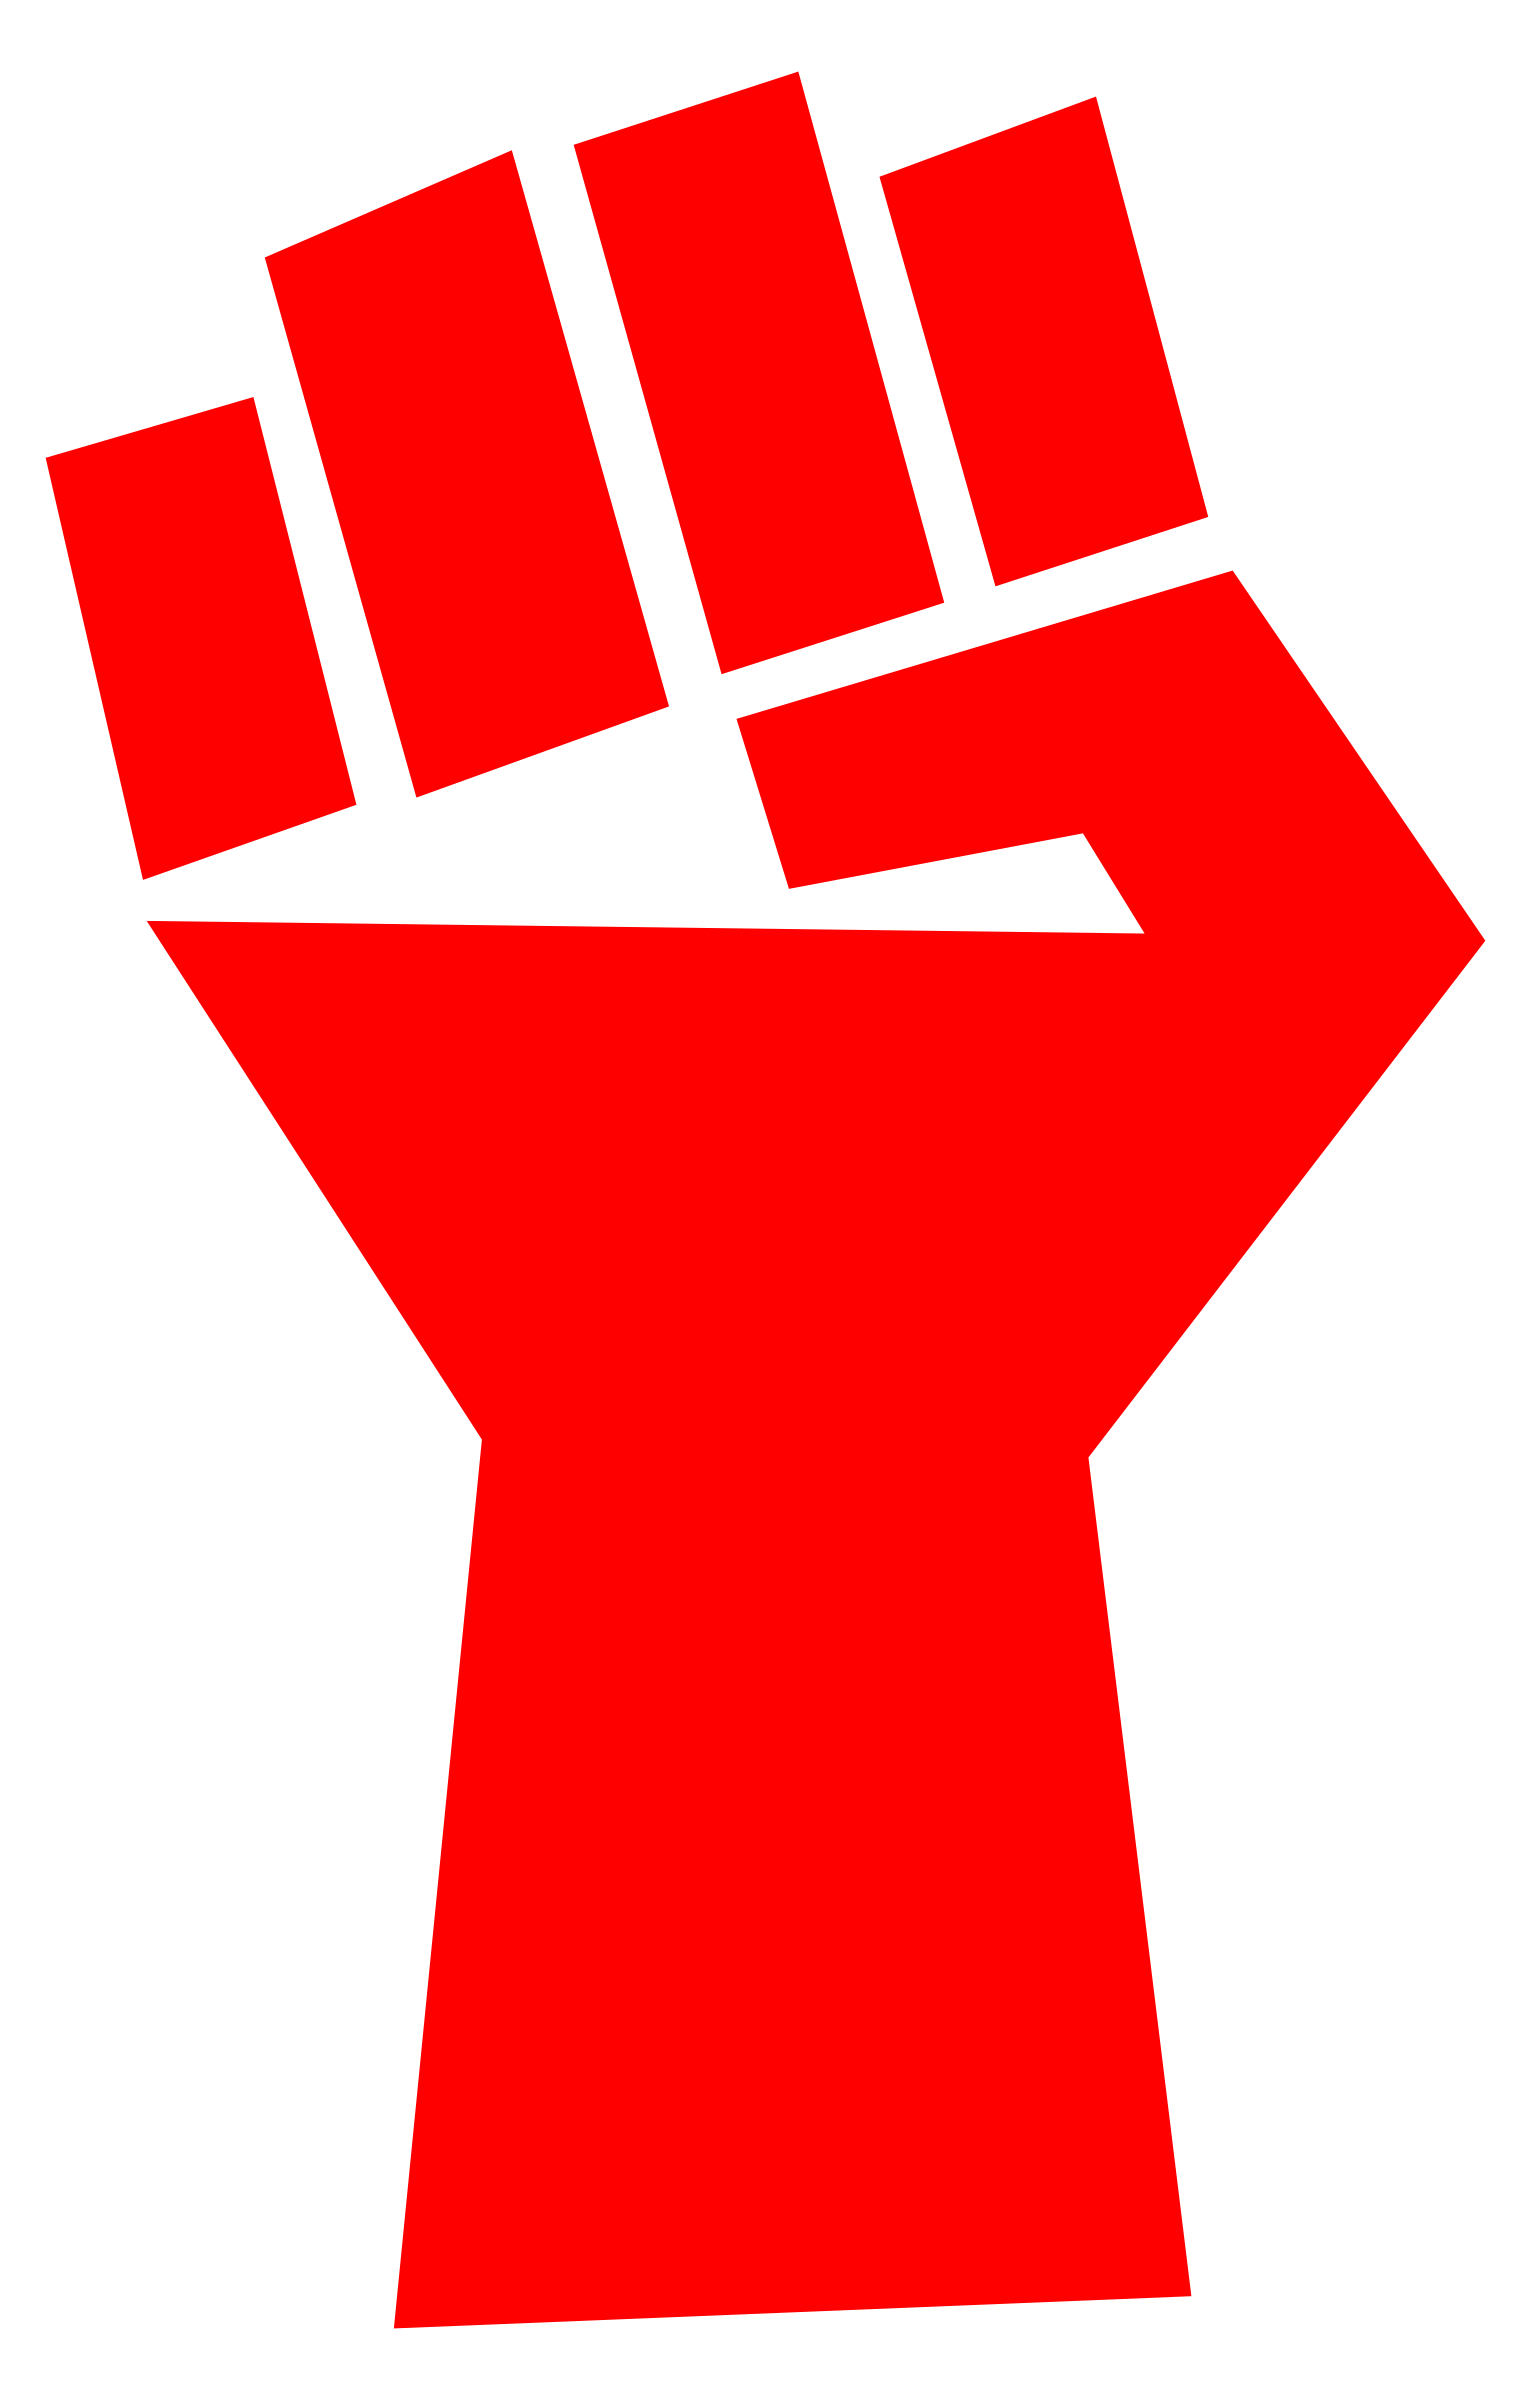 Revolution clipart fist Simple Fist Fist Clipart simple